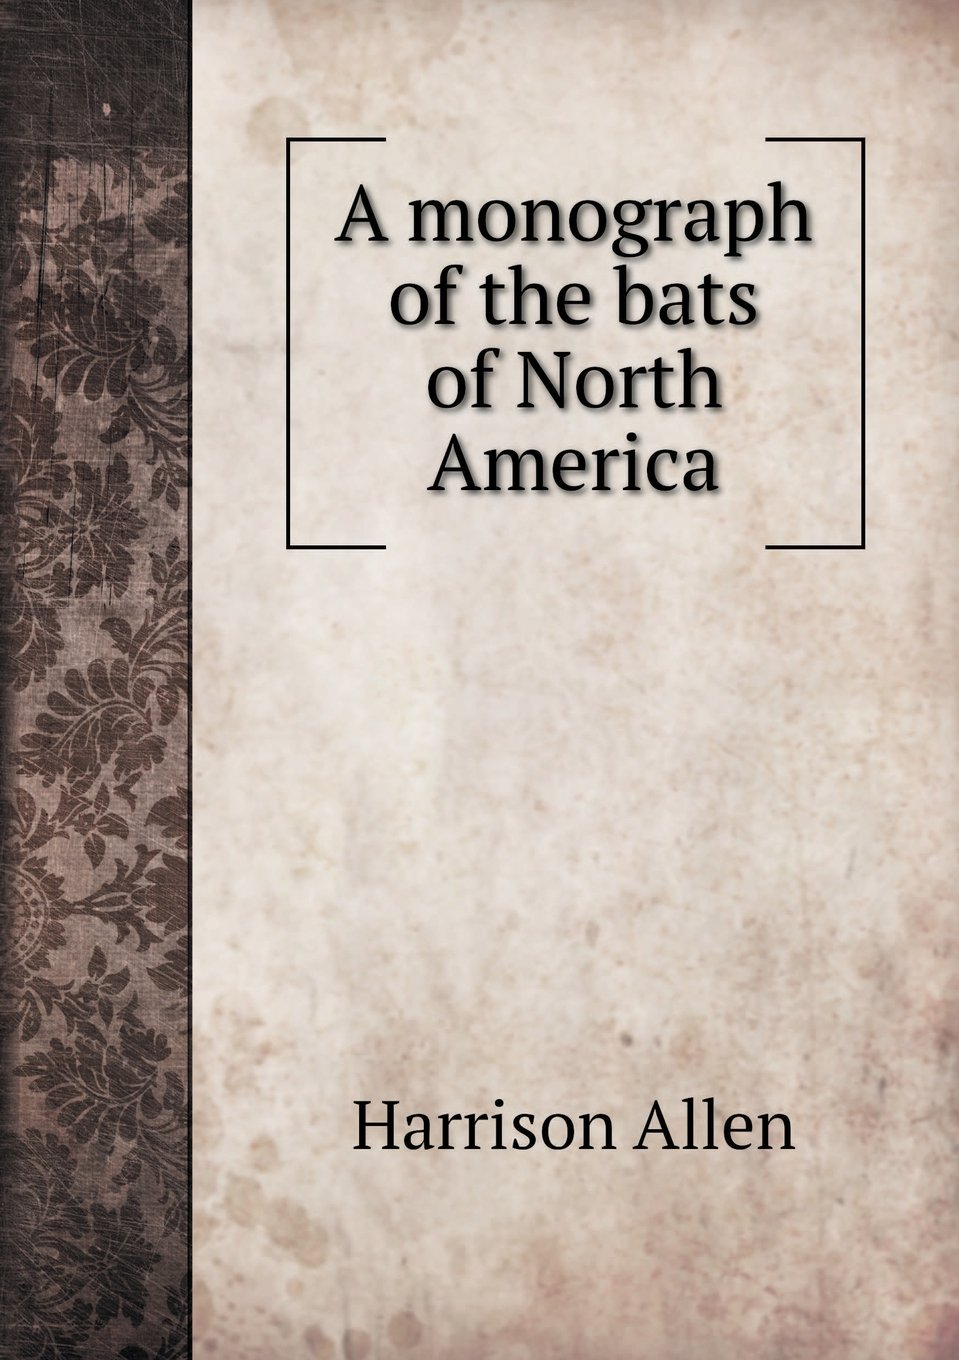 A monograph of the bats of North America pdf